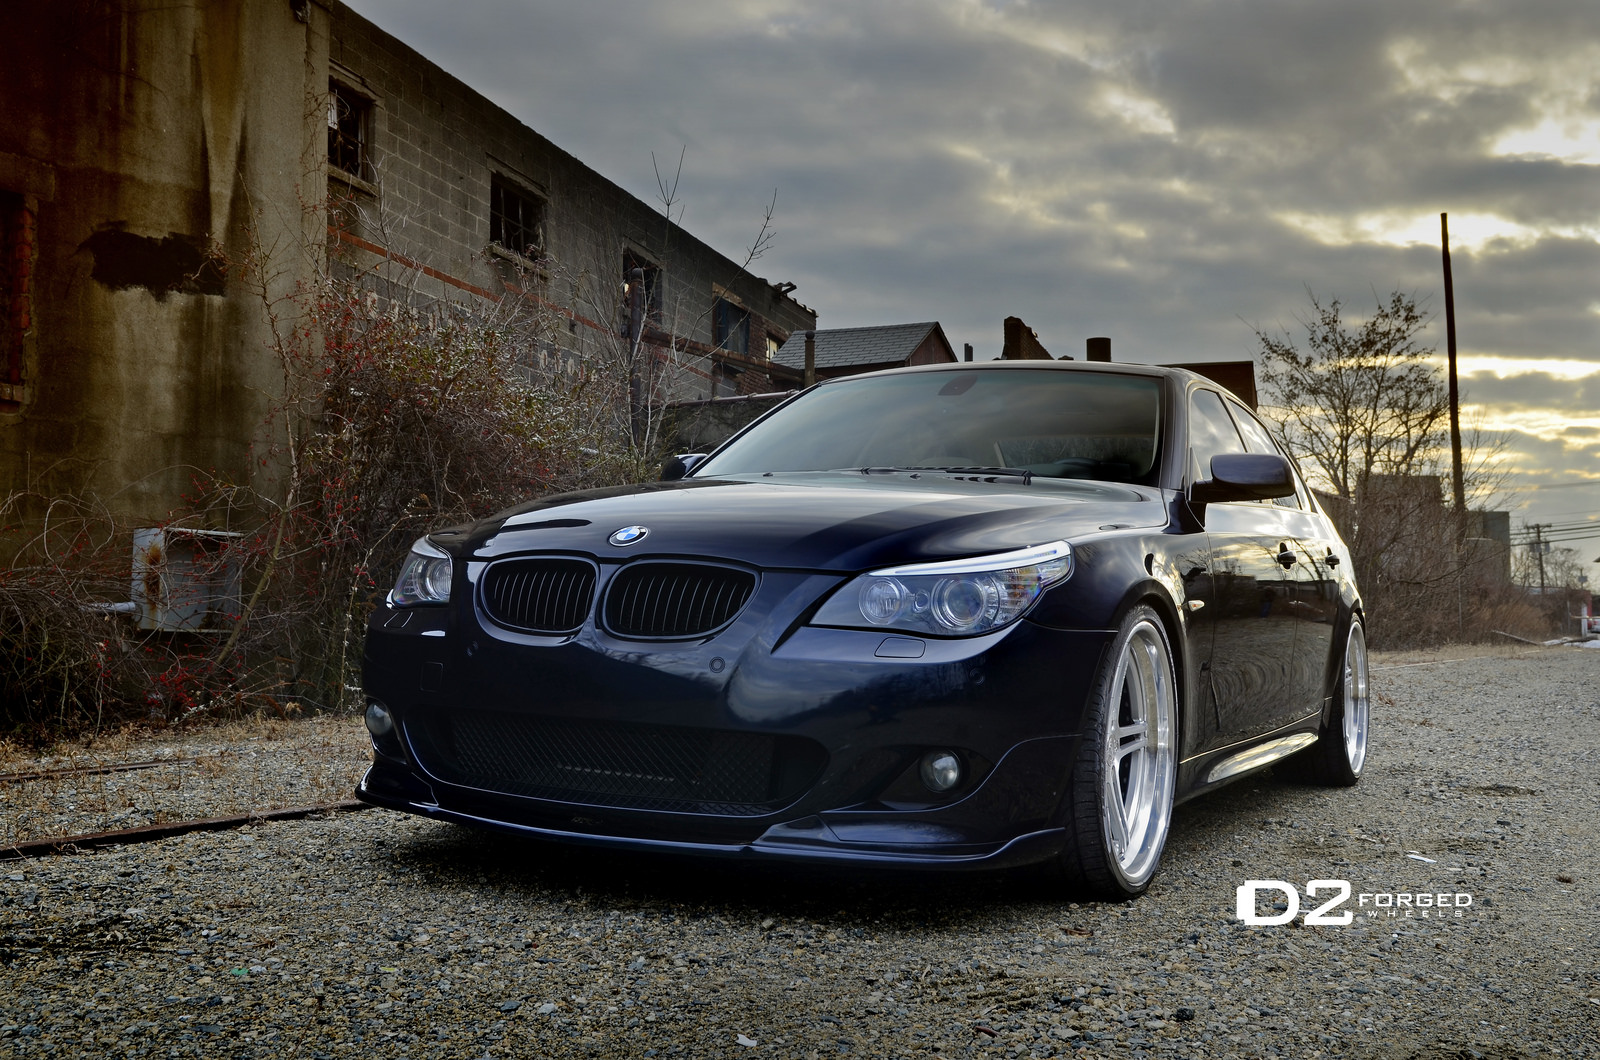 clean bmw e60 5 series on d2forged wheels is here to stay autoevolution. Black Bedroom Furniture Sets. Home Design Ideas